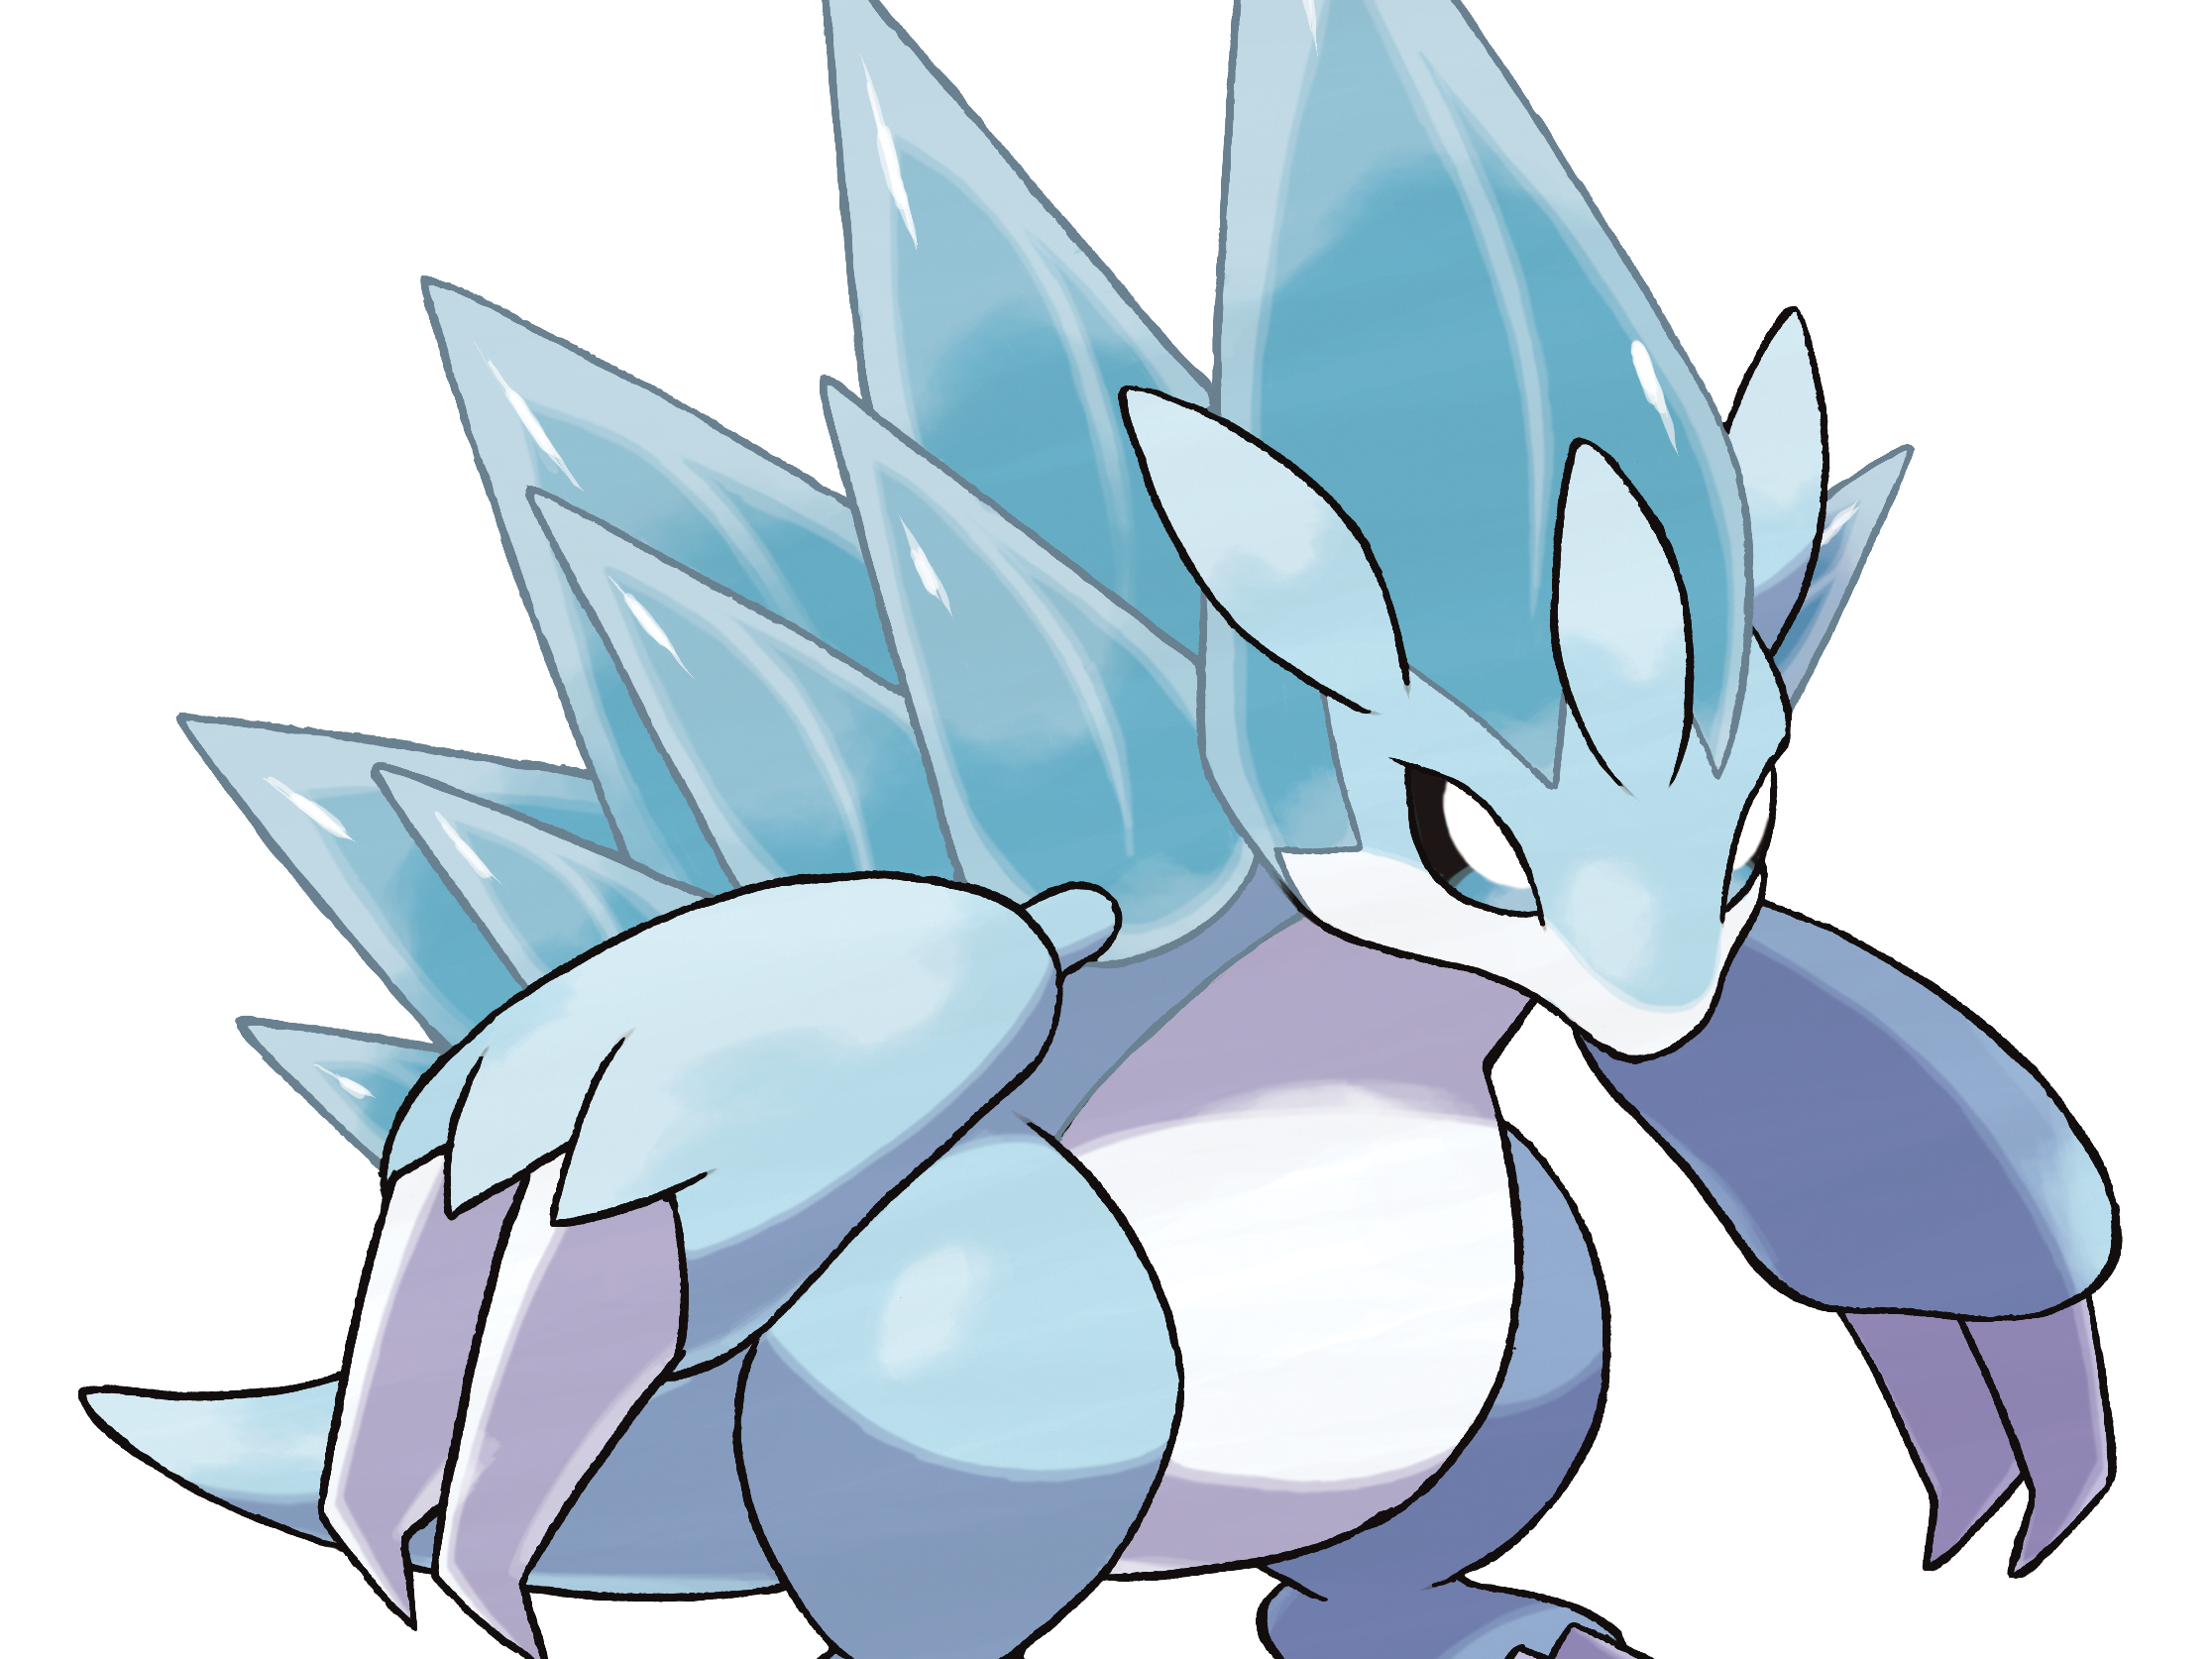 And suddenly, Sandslash is cool again. Literally this time.